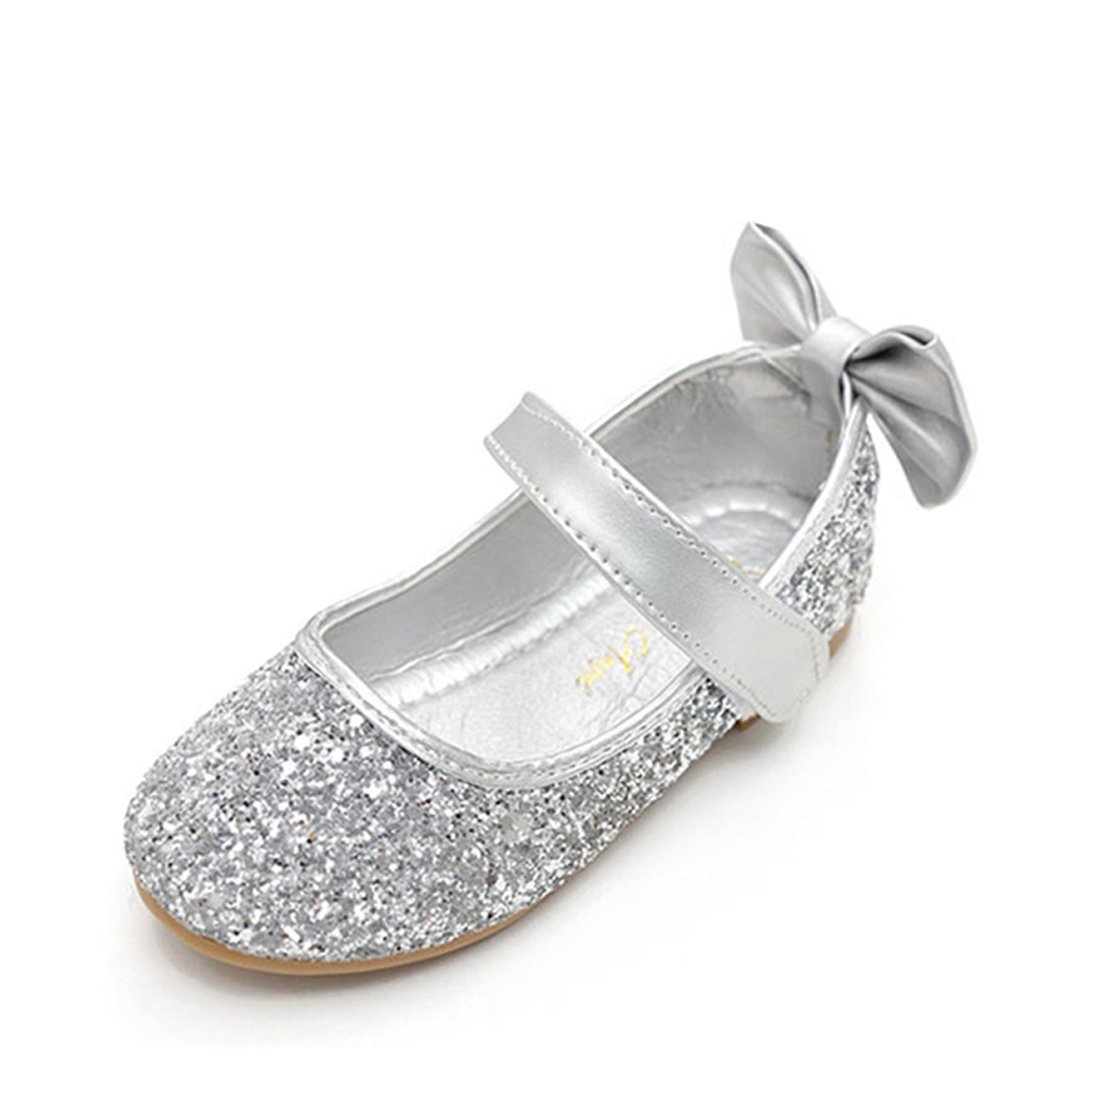 O&N Glitter Bow Kids Children Girls Ballet Flats Princess Bridesmaid Wedding Party School Shoes Mary Jane Silver 1 M US Little Kid